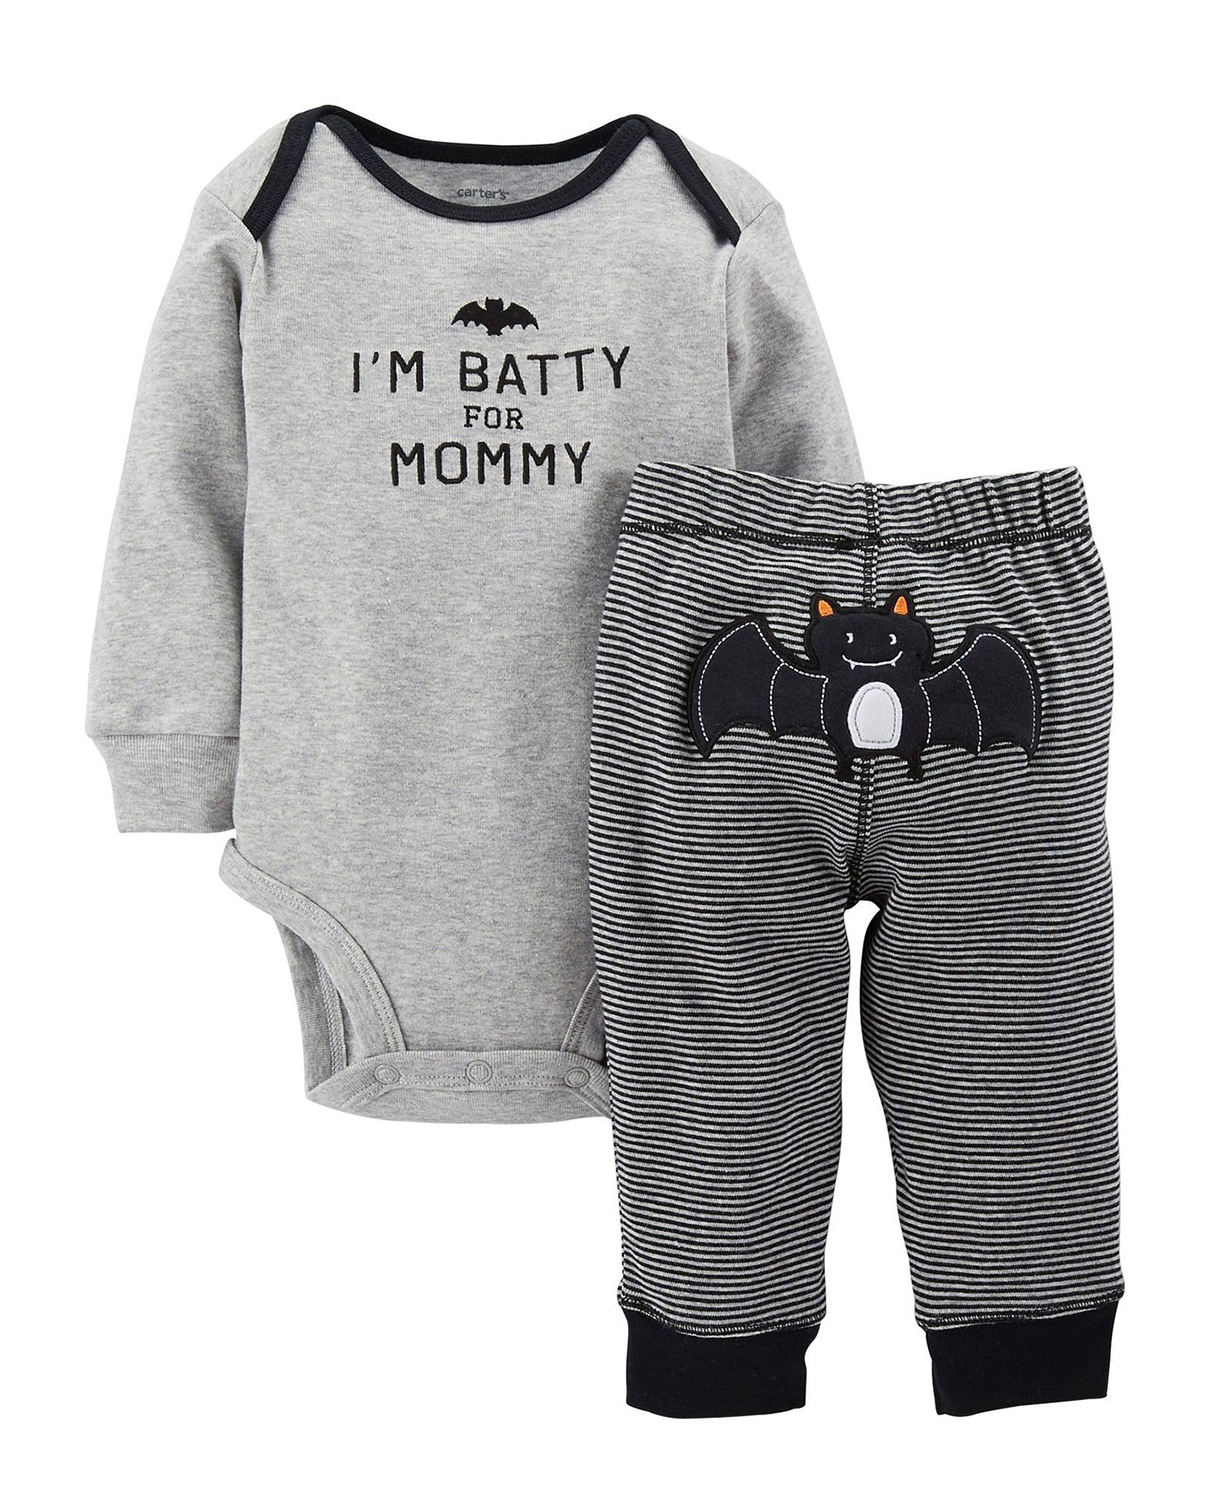 Cute Carter's Baby Boys' 2 Piece Halloween Set (Baby) – Black ...